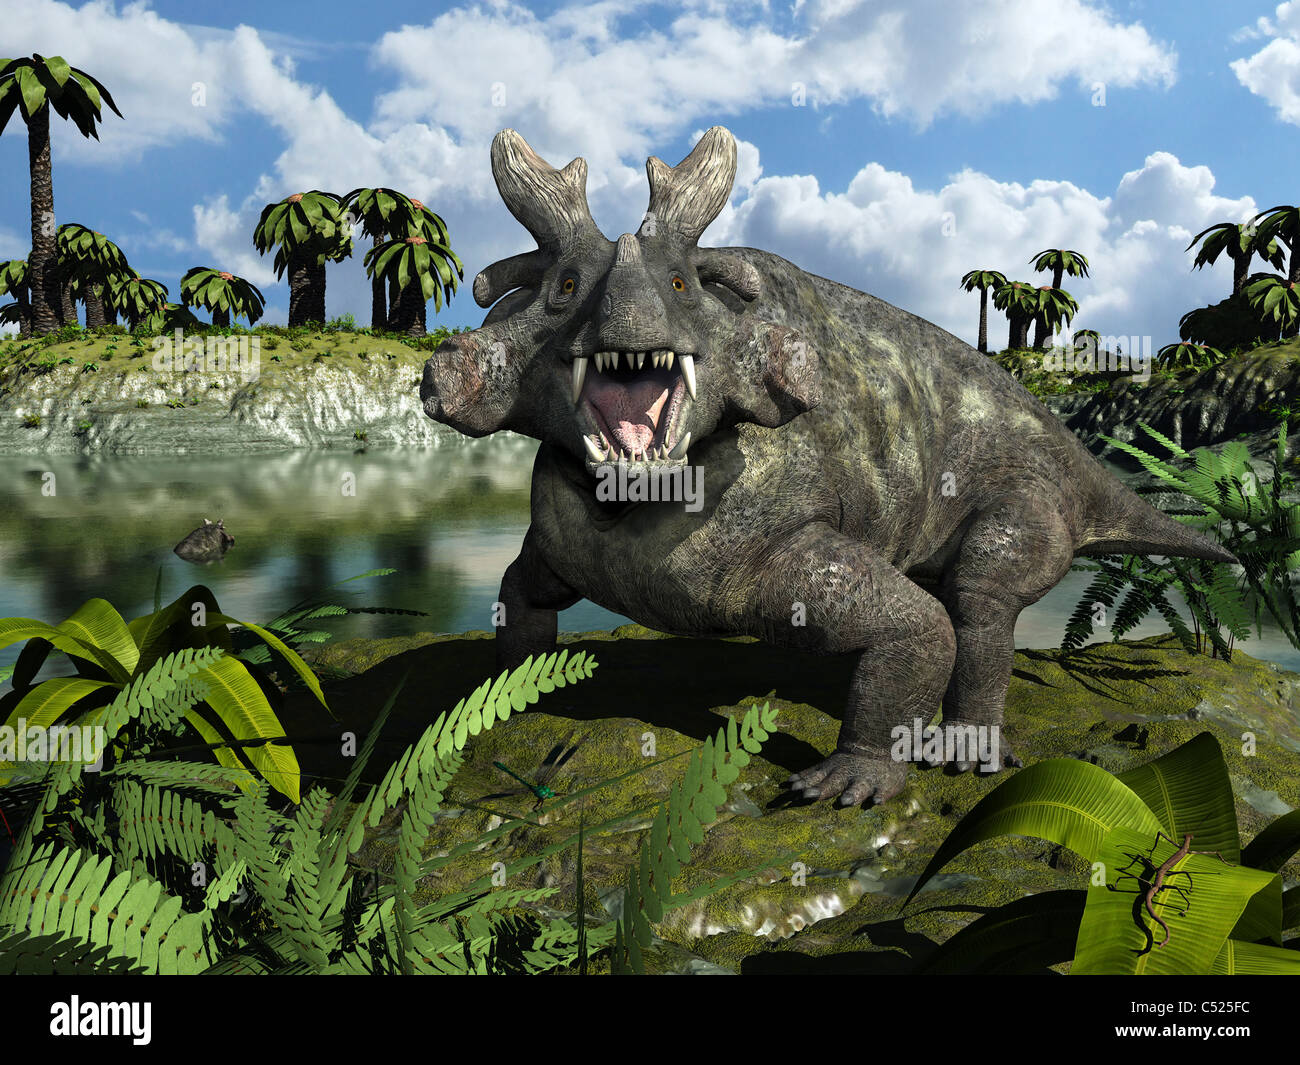 An Estemmenosuchus mirabilis stands before a lake 255 million years ago. - Stock Image